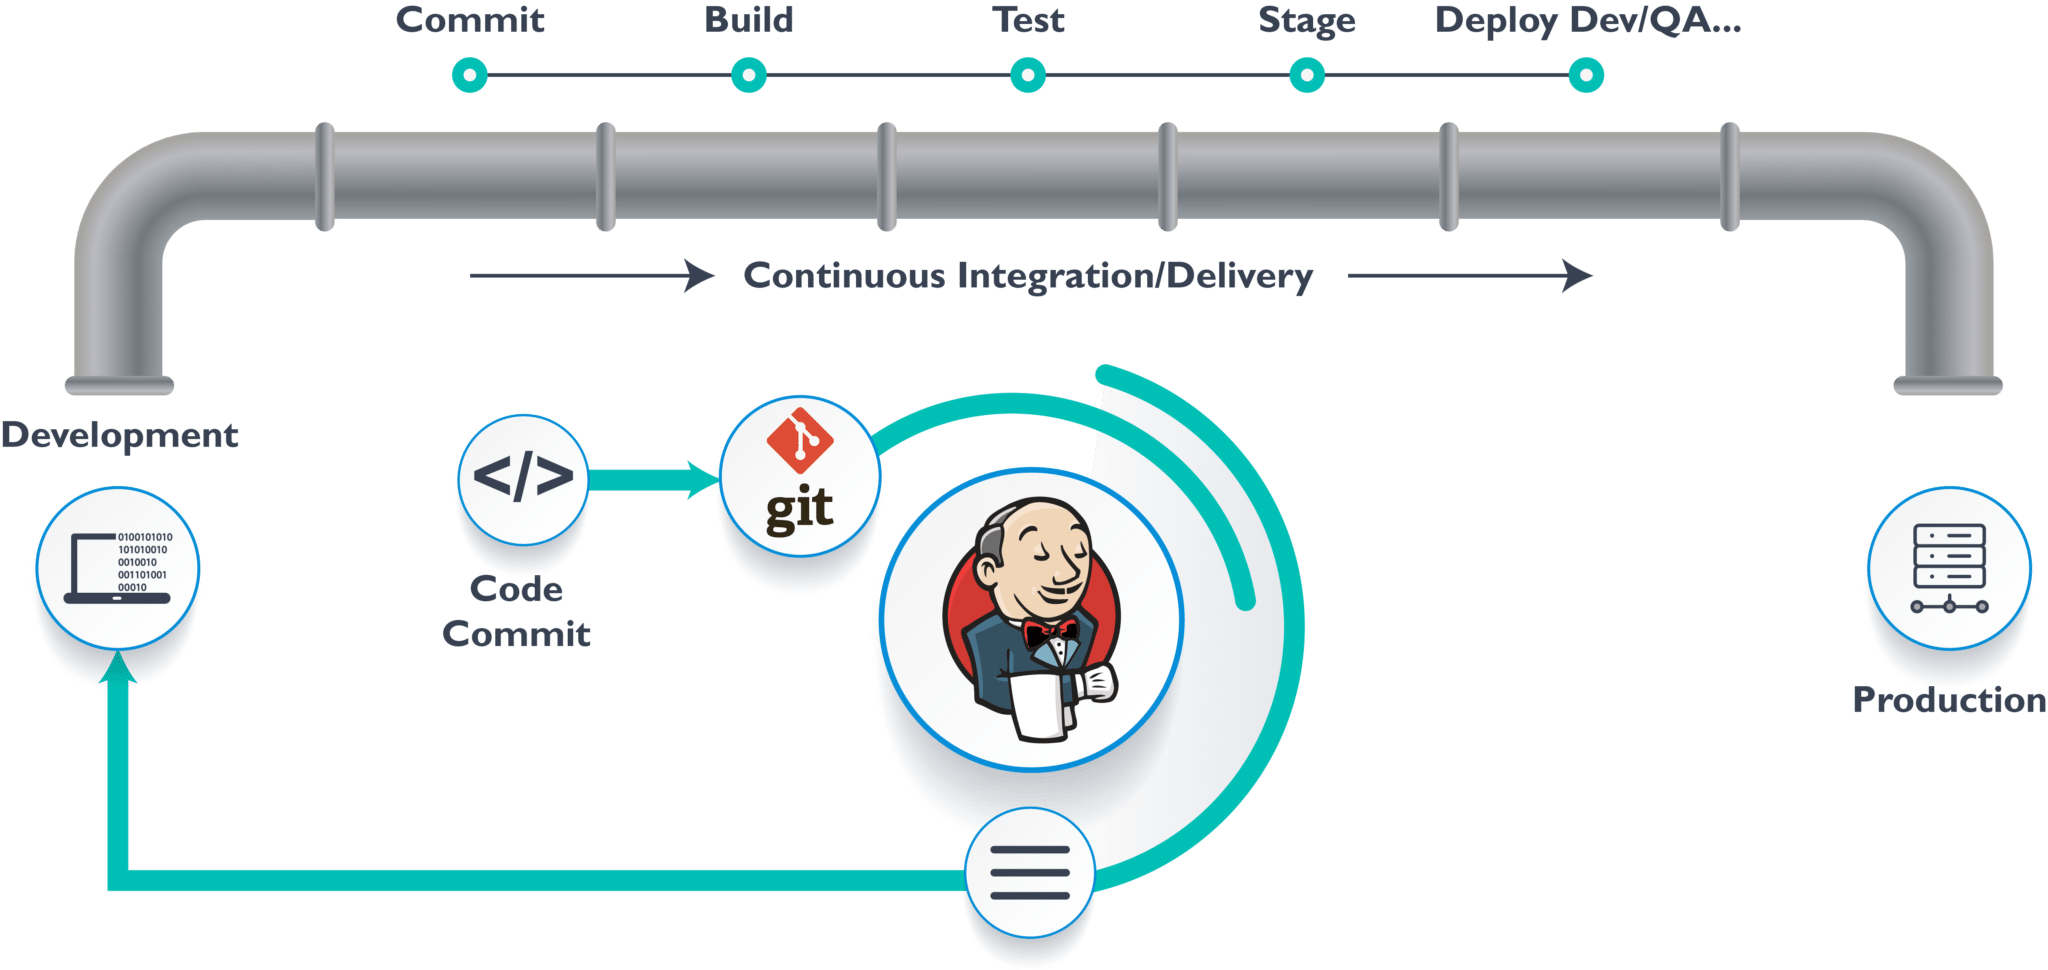 Jenkins pipeline tutorial : First step guide to Continuous